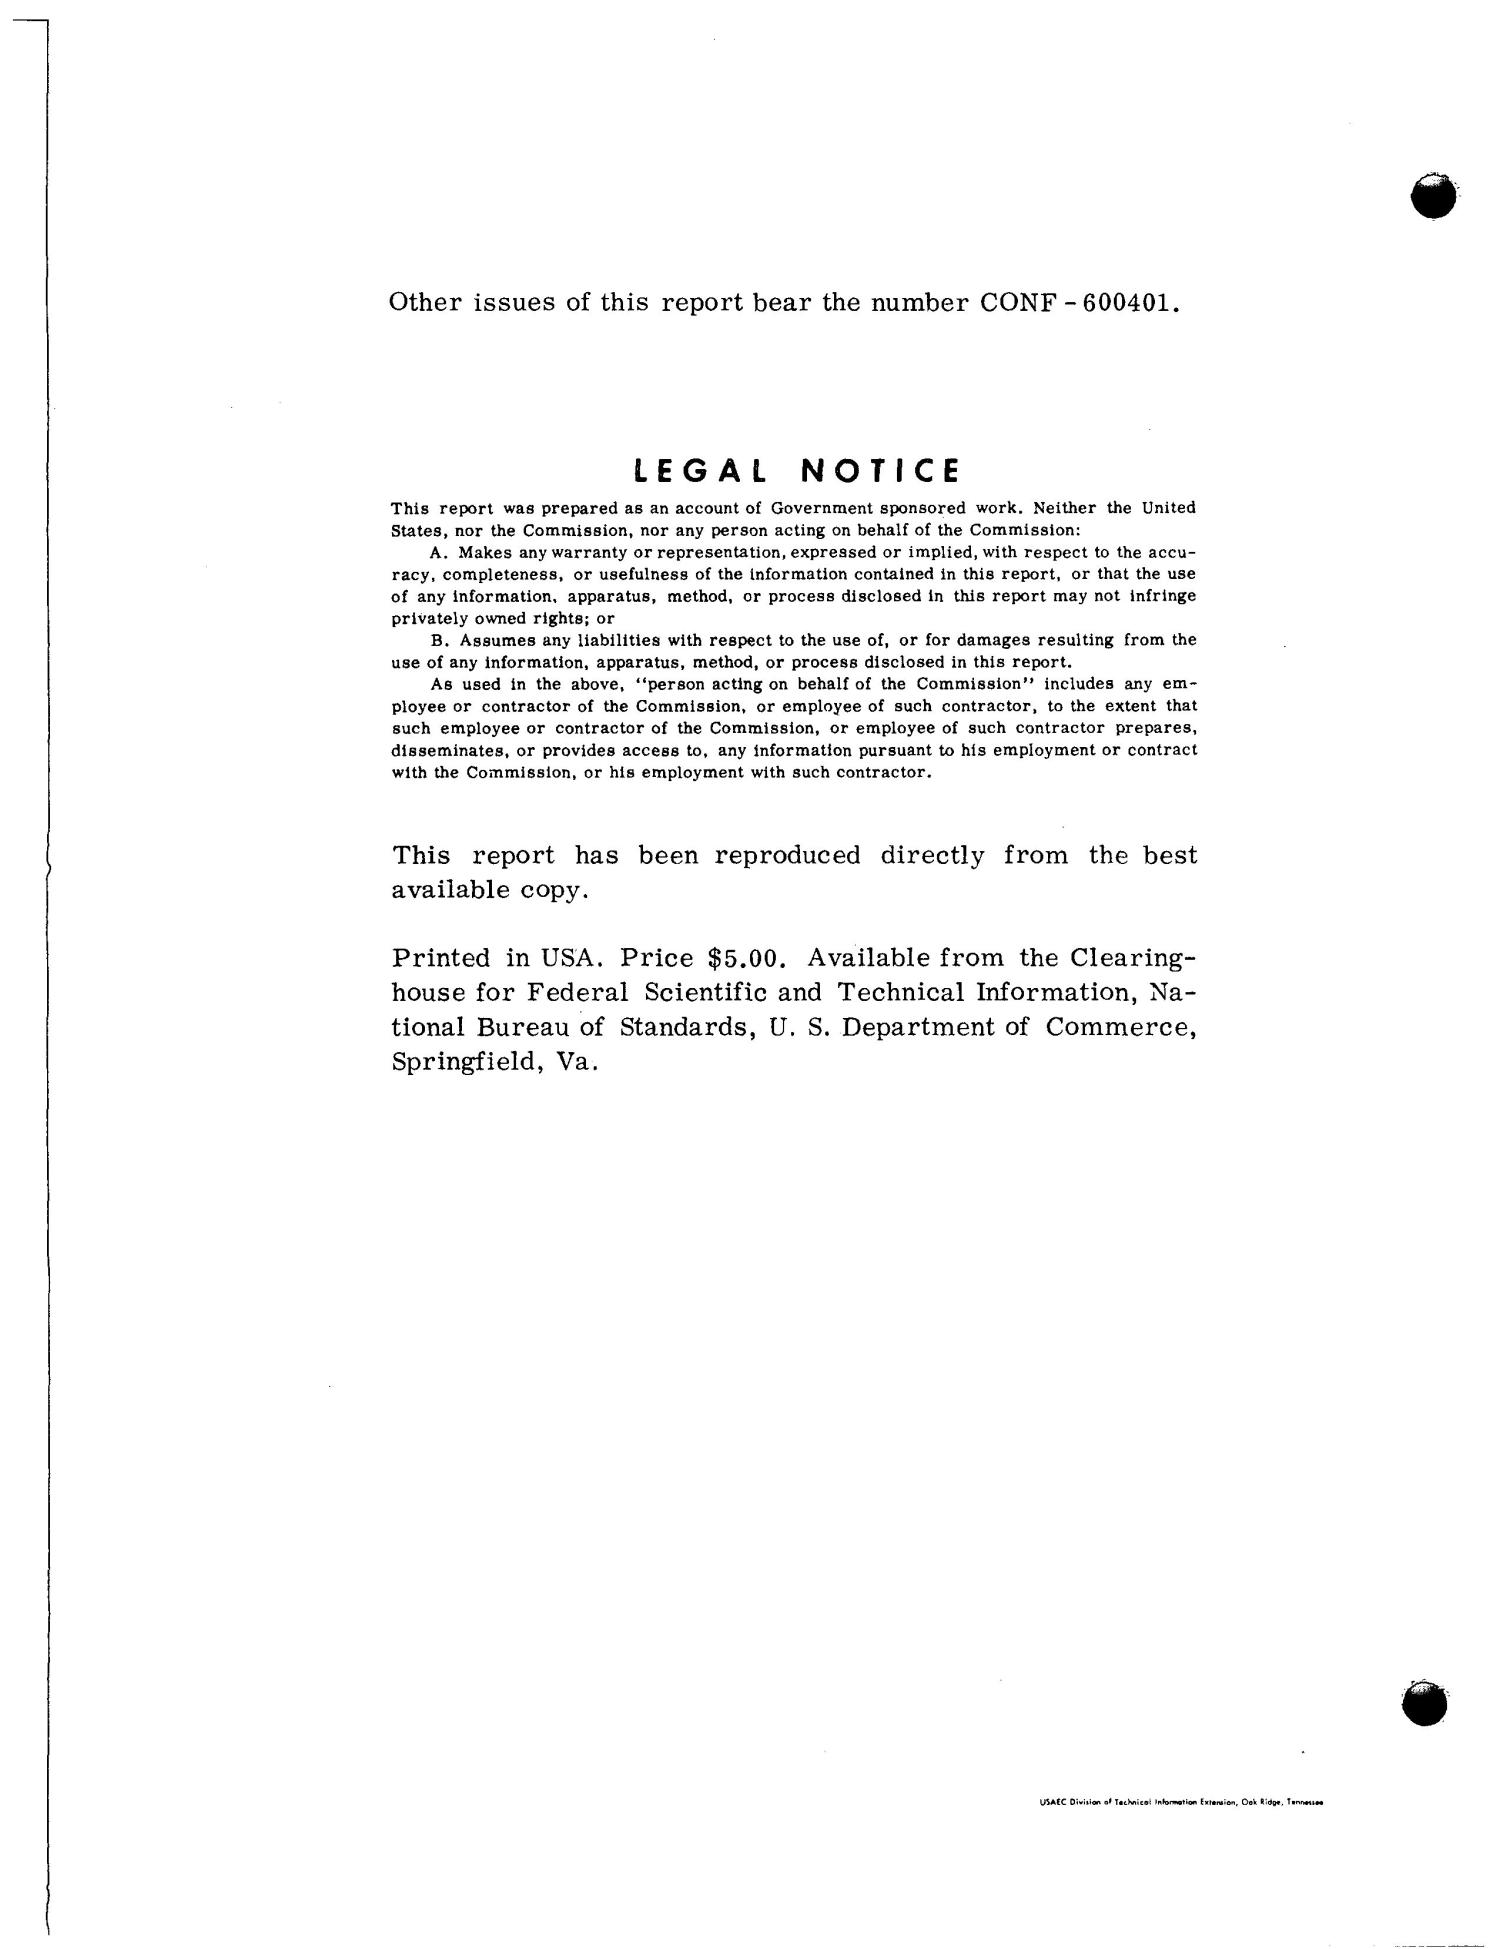 TECHNICAL PAPERS OF THE FOURTEENTH METALLOGRAPHIC GROUP MEETING, HELD APRIL 5-6, 1960 AT NUCLEAR METALS, INC., WEST CONCORD, MASSACHUSETTS                                                                                                      [Sequence #]: 4 of 179